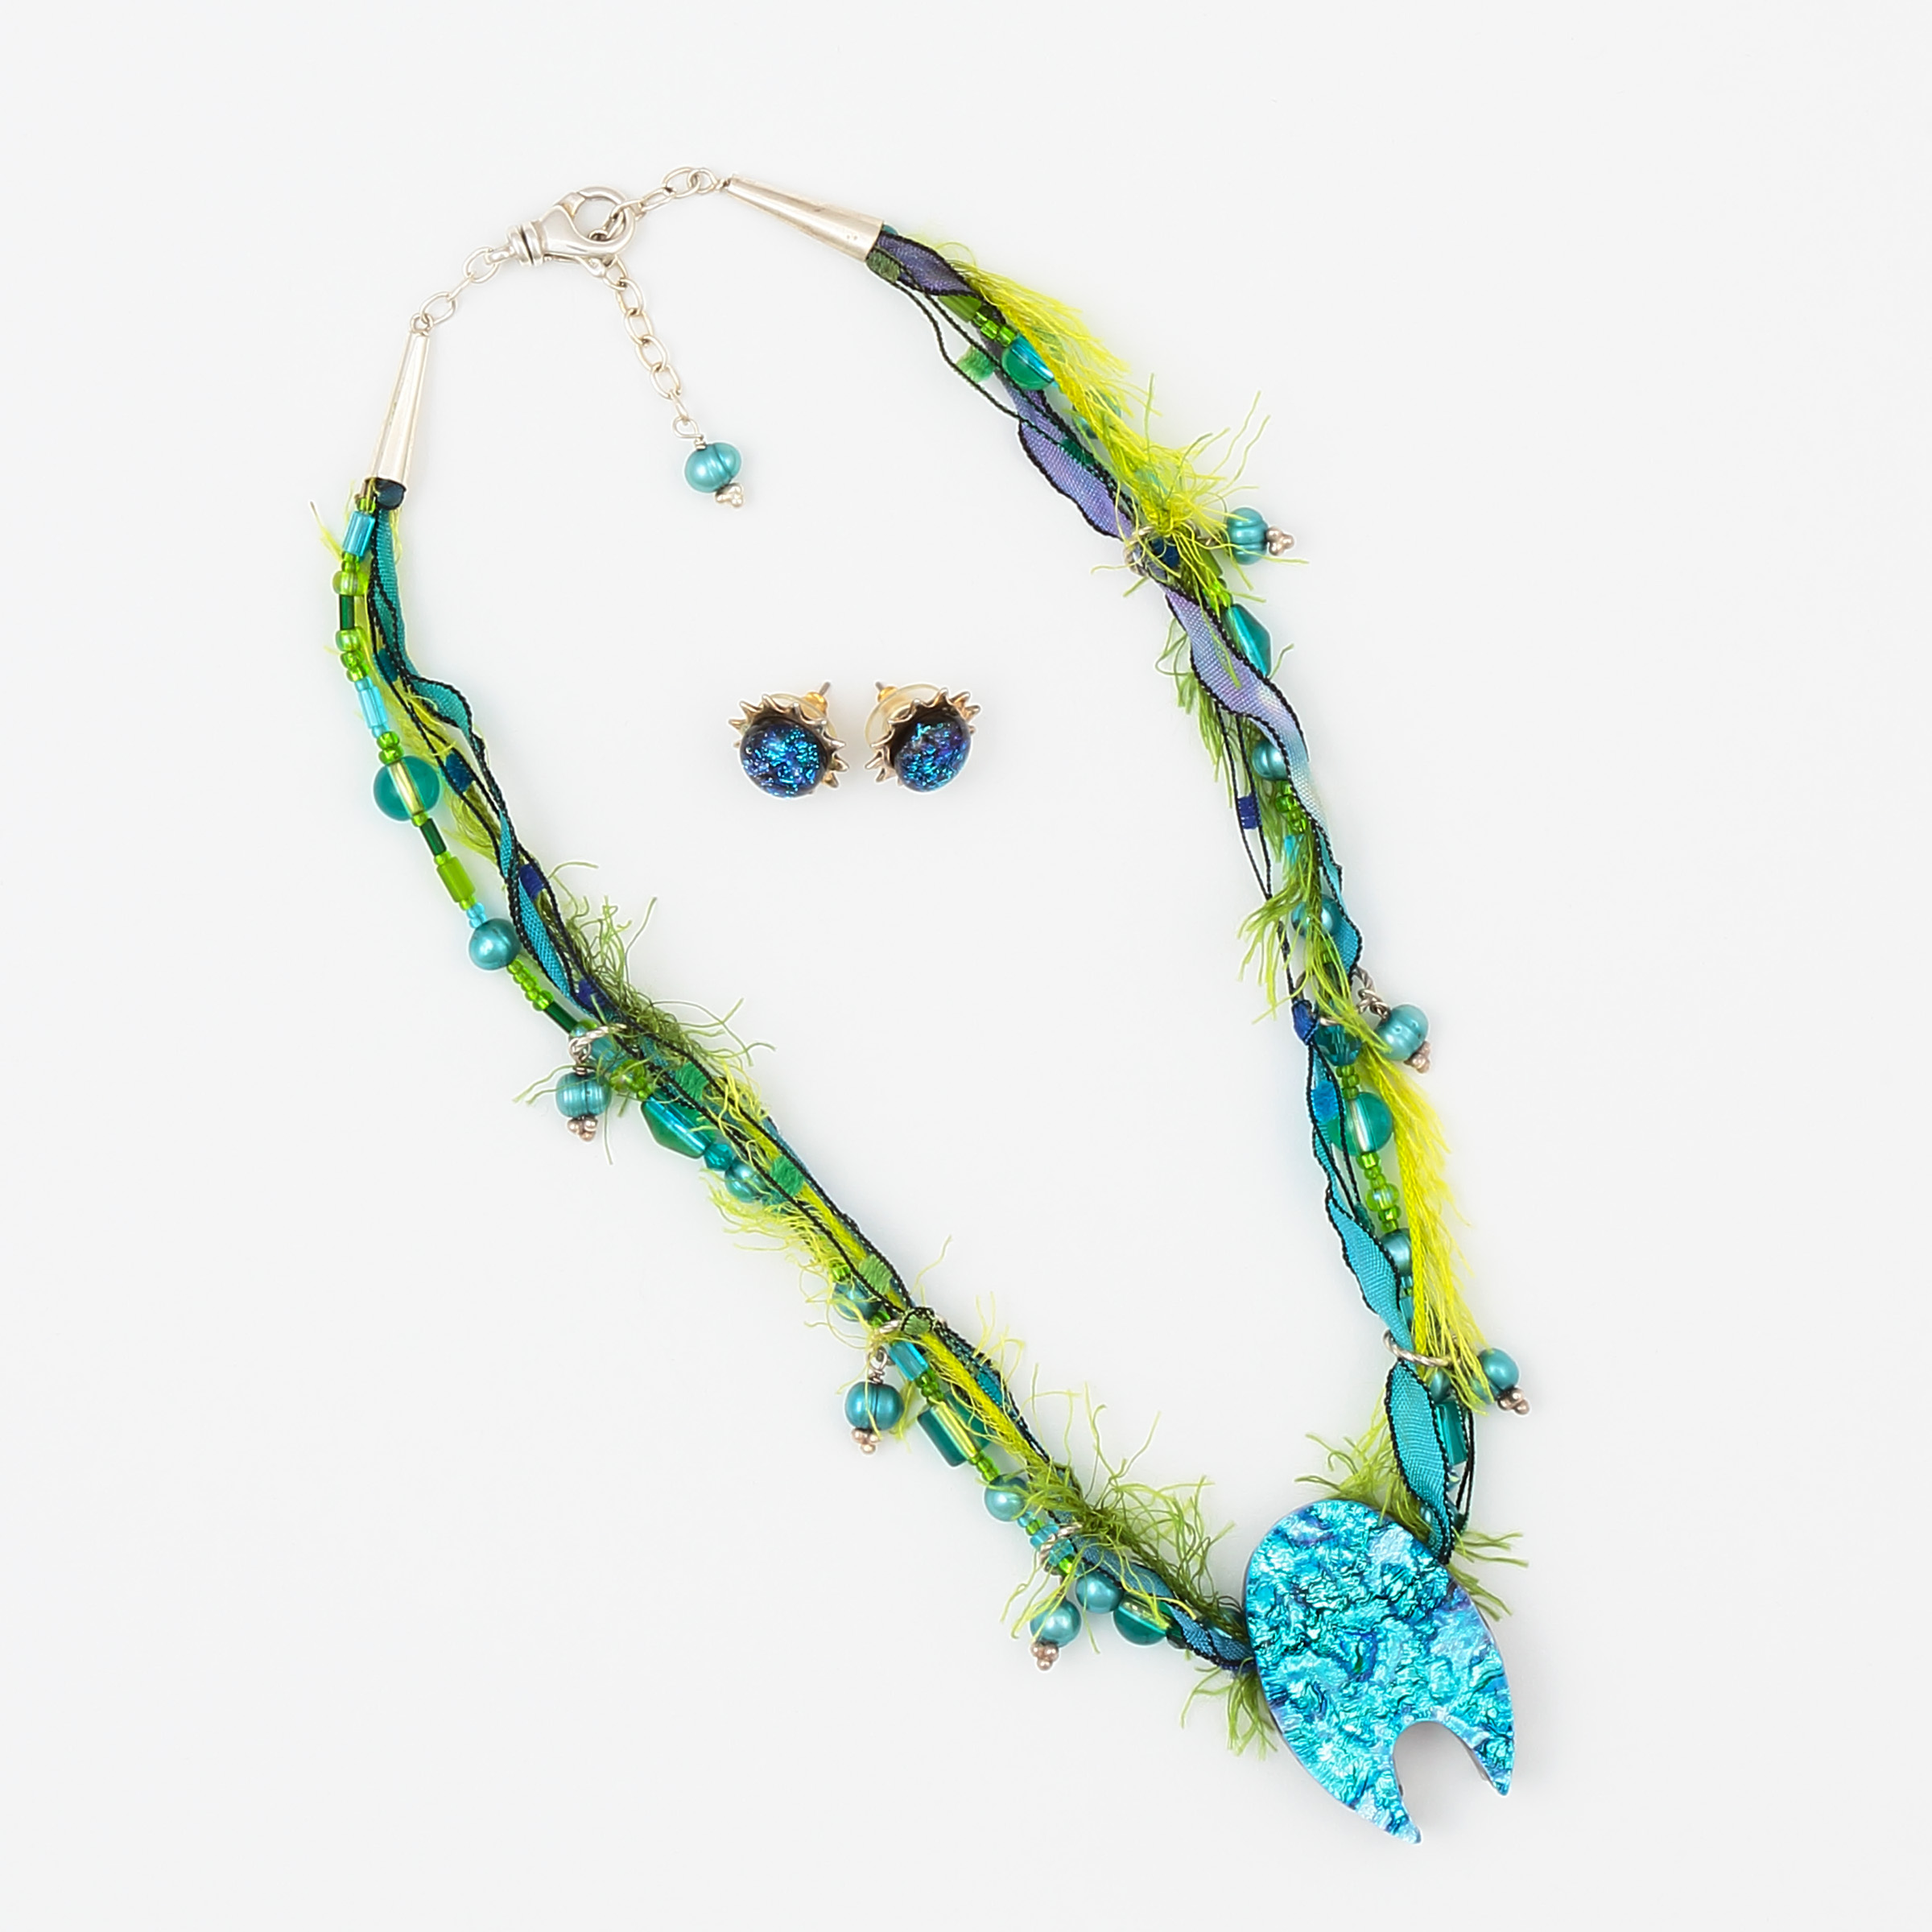 Sushi Necklace & Earring set- green, blue, turquoise, black art glass and pearls with hand dyed silk and sterling silver